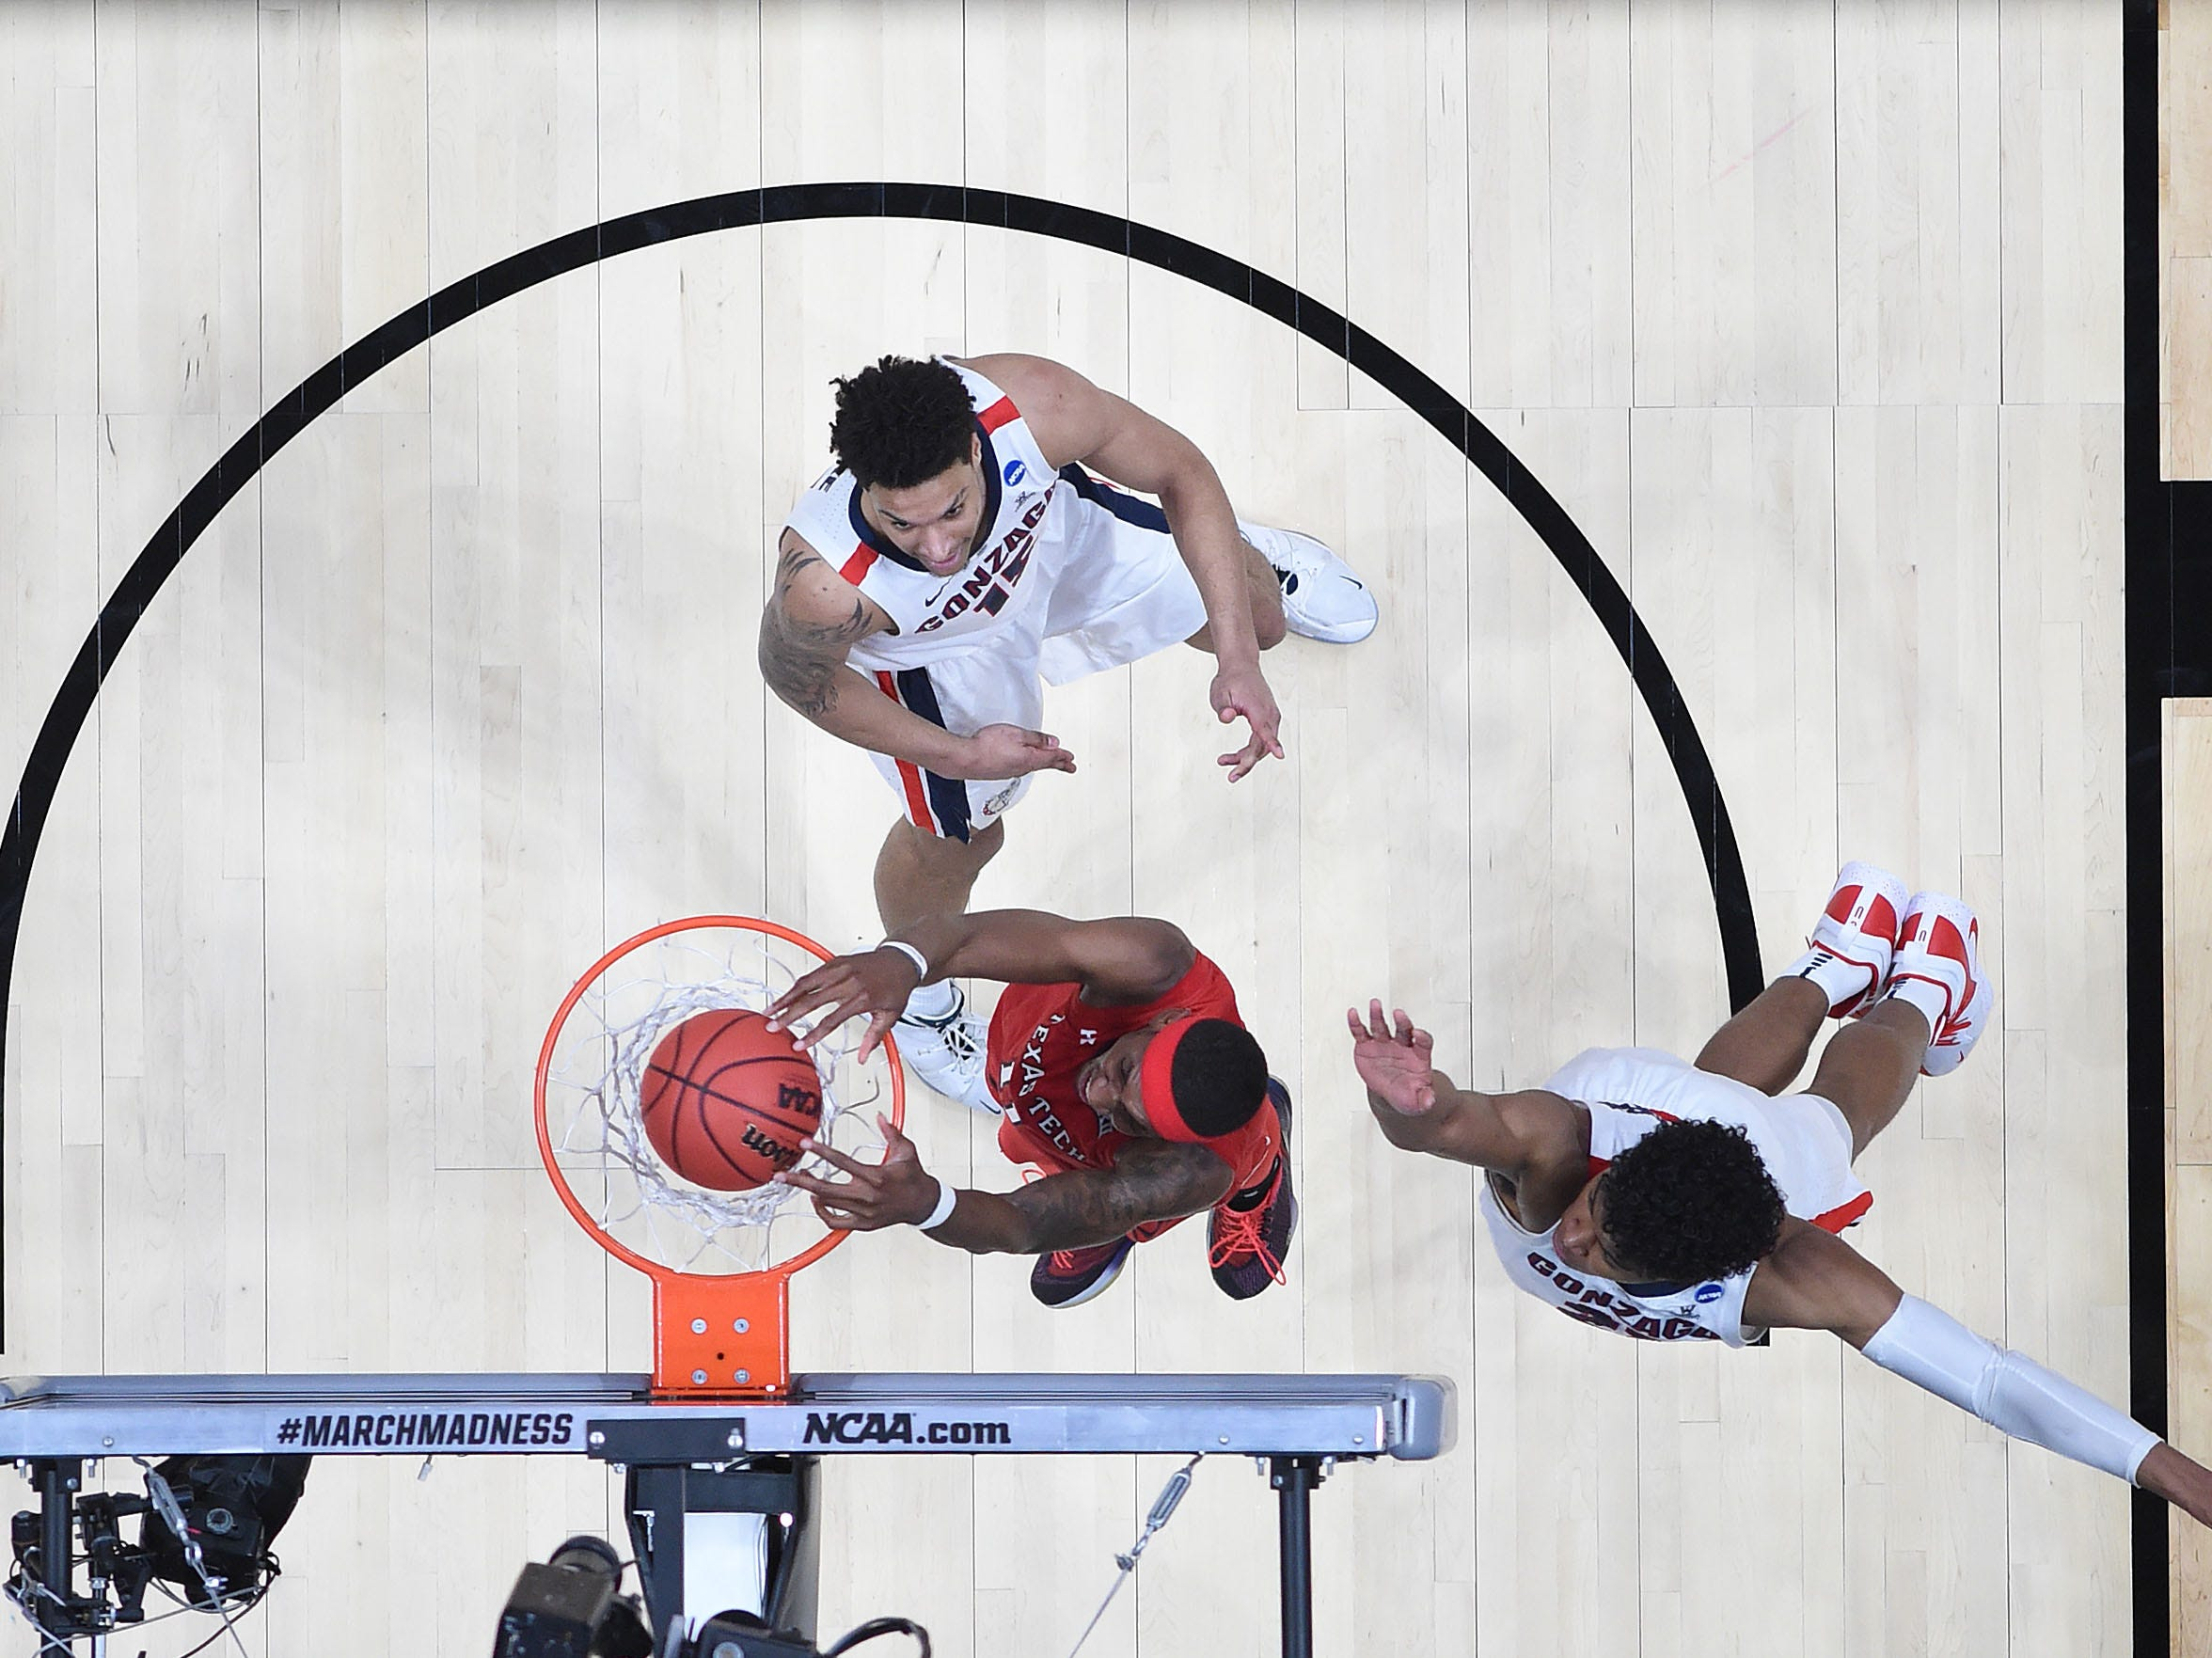 March 30, 2019; Anaheim, CA, USA; Texas Tech Red Raiders forward Tariq Owens (11) scores a basket ahead of Gonzaga Bulldogs forward Rui Hachimura (21) during the second half in the championship game of the west regional of the 2019 NCAA Tournament at Honda Center. Mandatory Credit: Richard Mackson-USA TODAY Sports